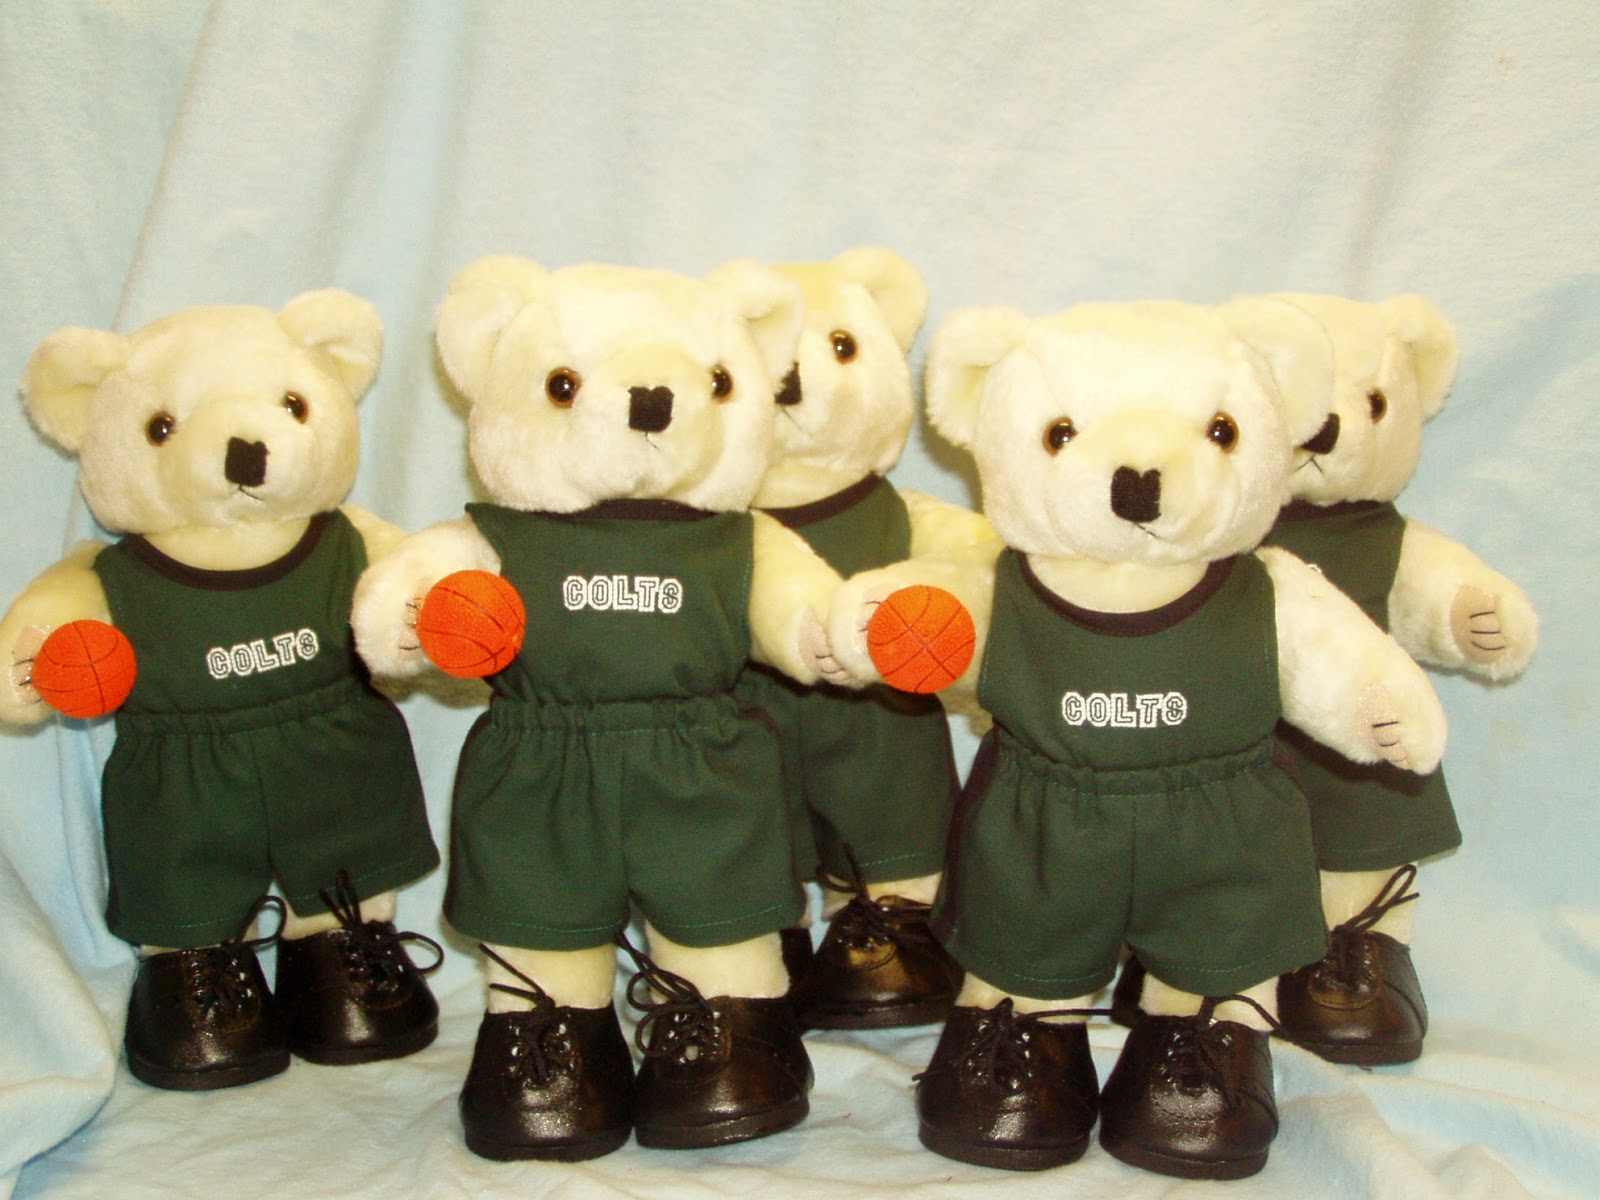 Basketball Bears in uniforms